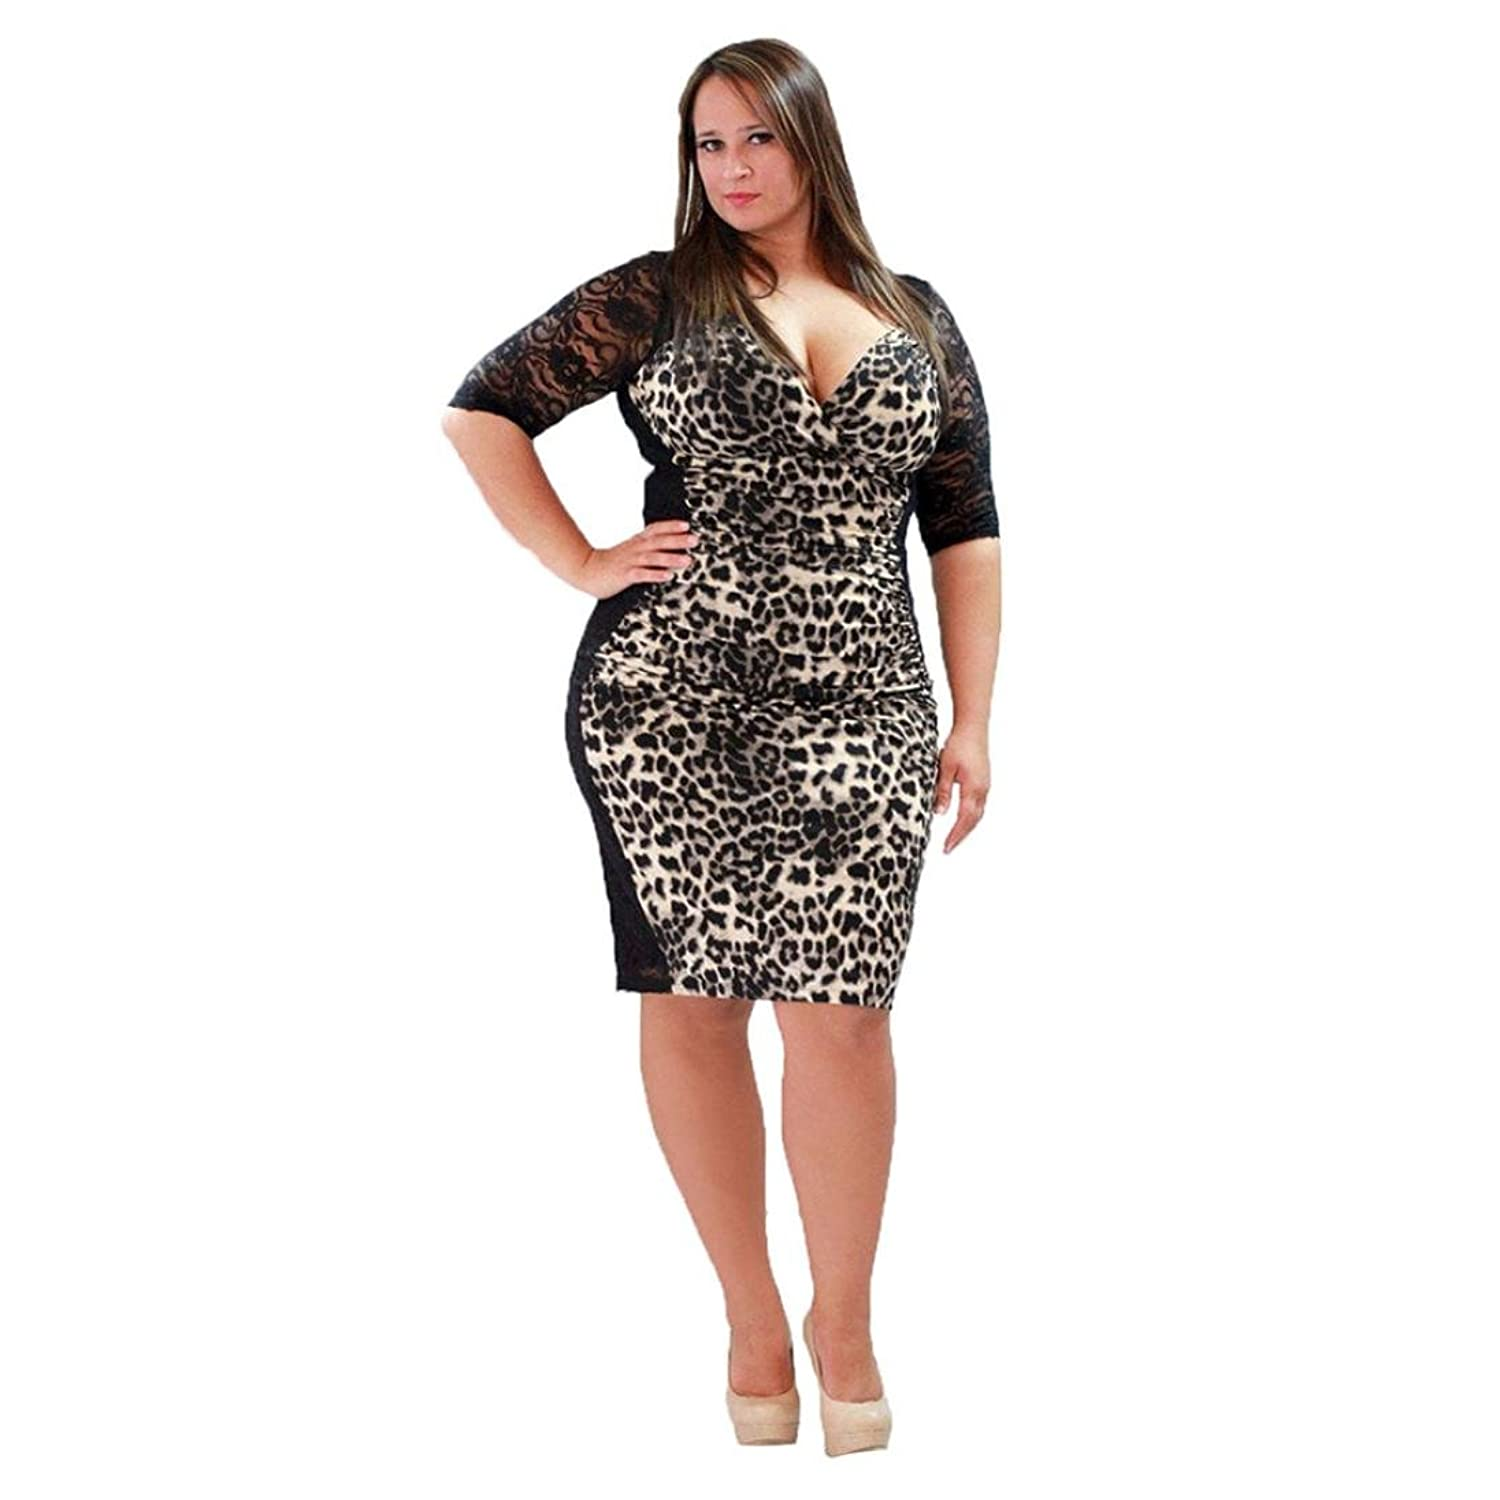 GBSELL Sexy Women Summer Half Sleeve Lace Leopard V-Neck Large Size Dress